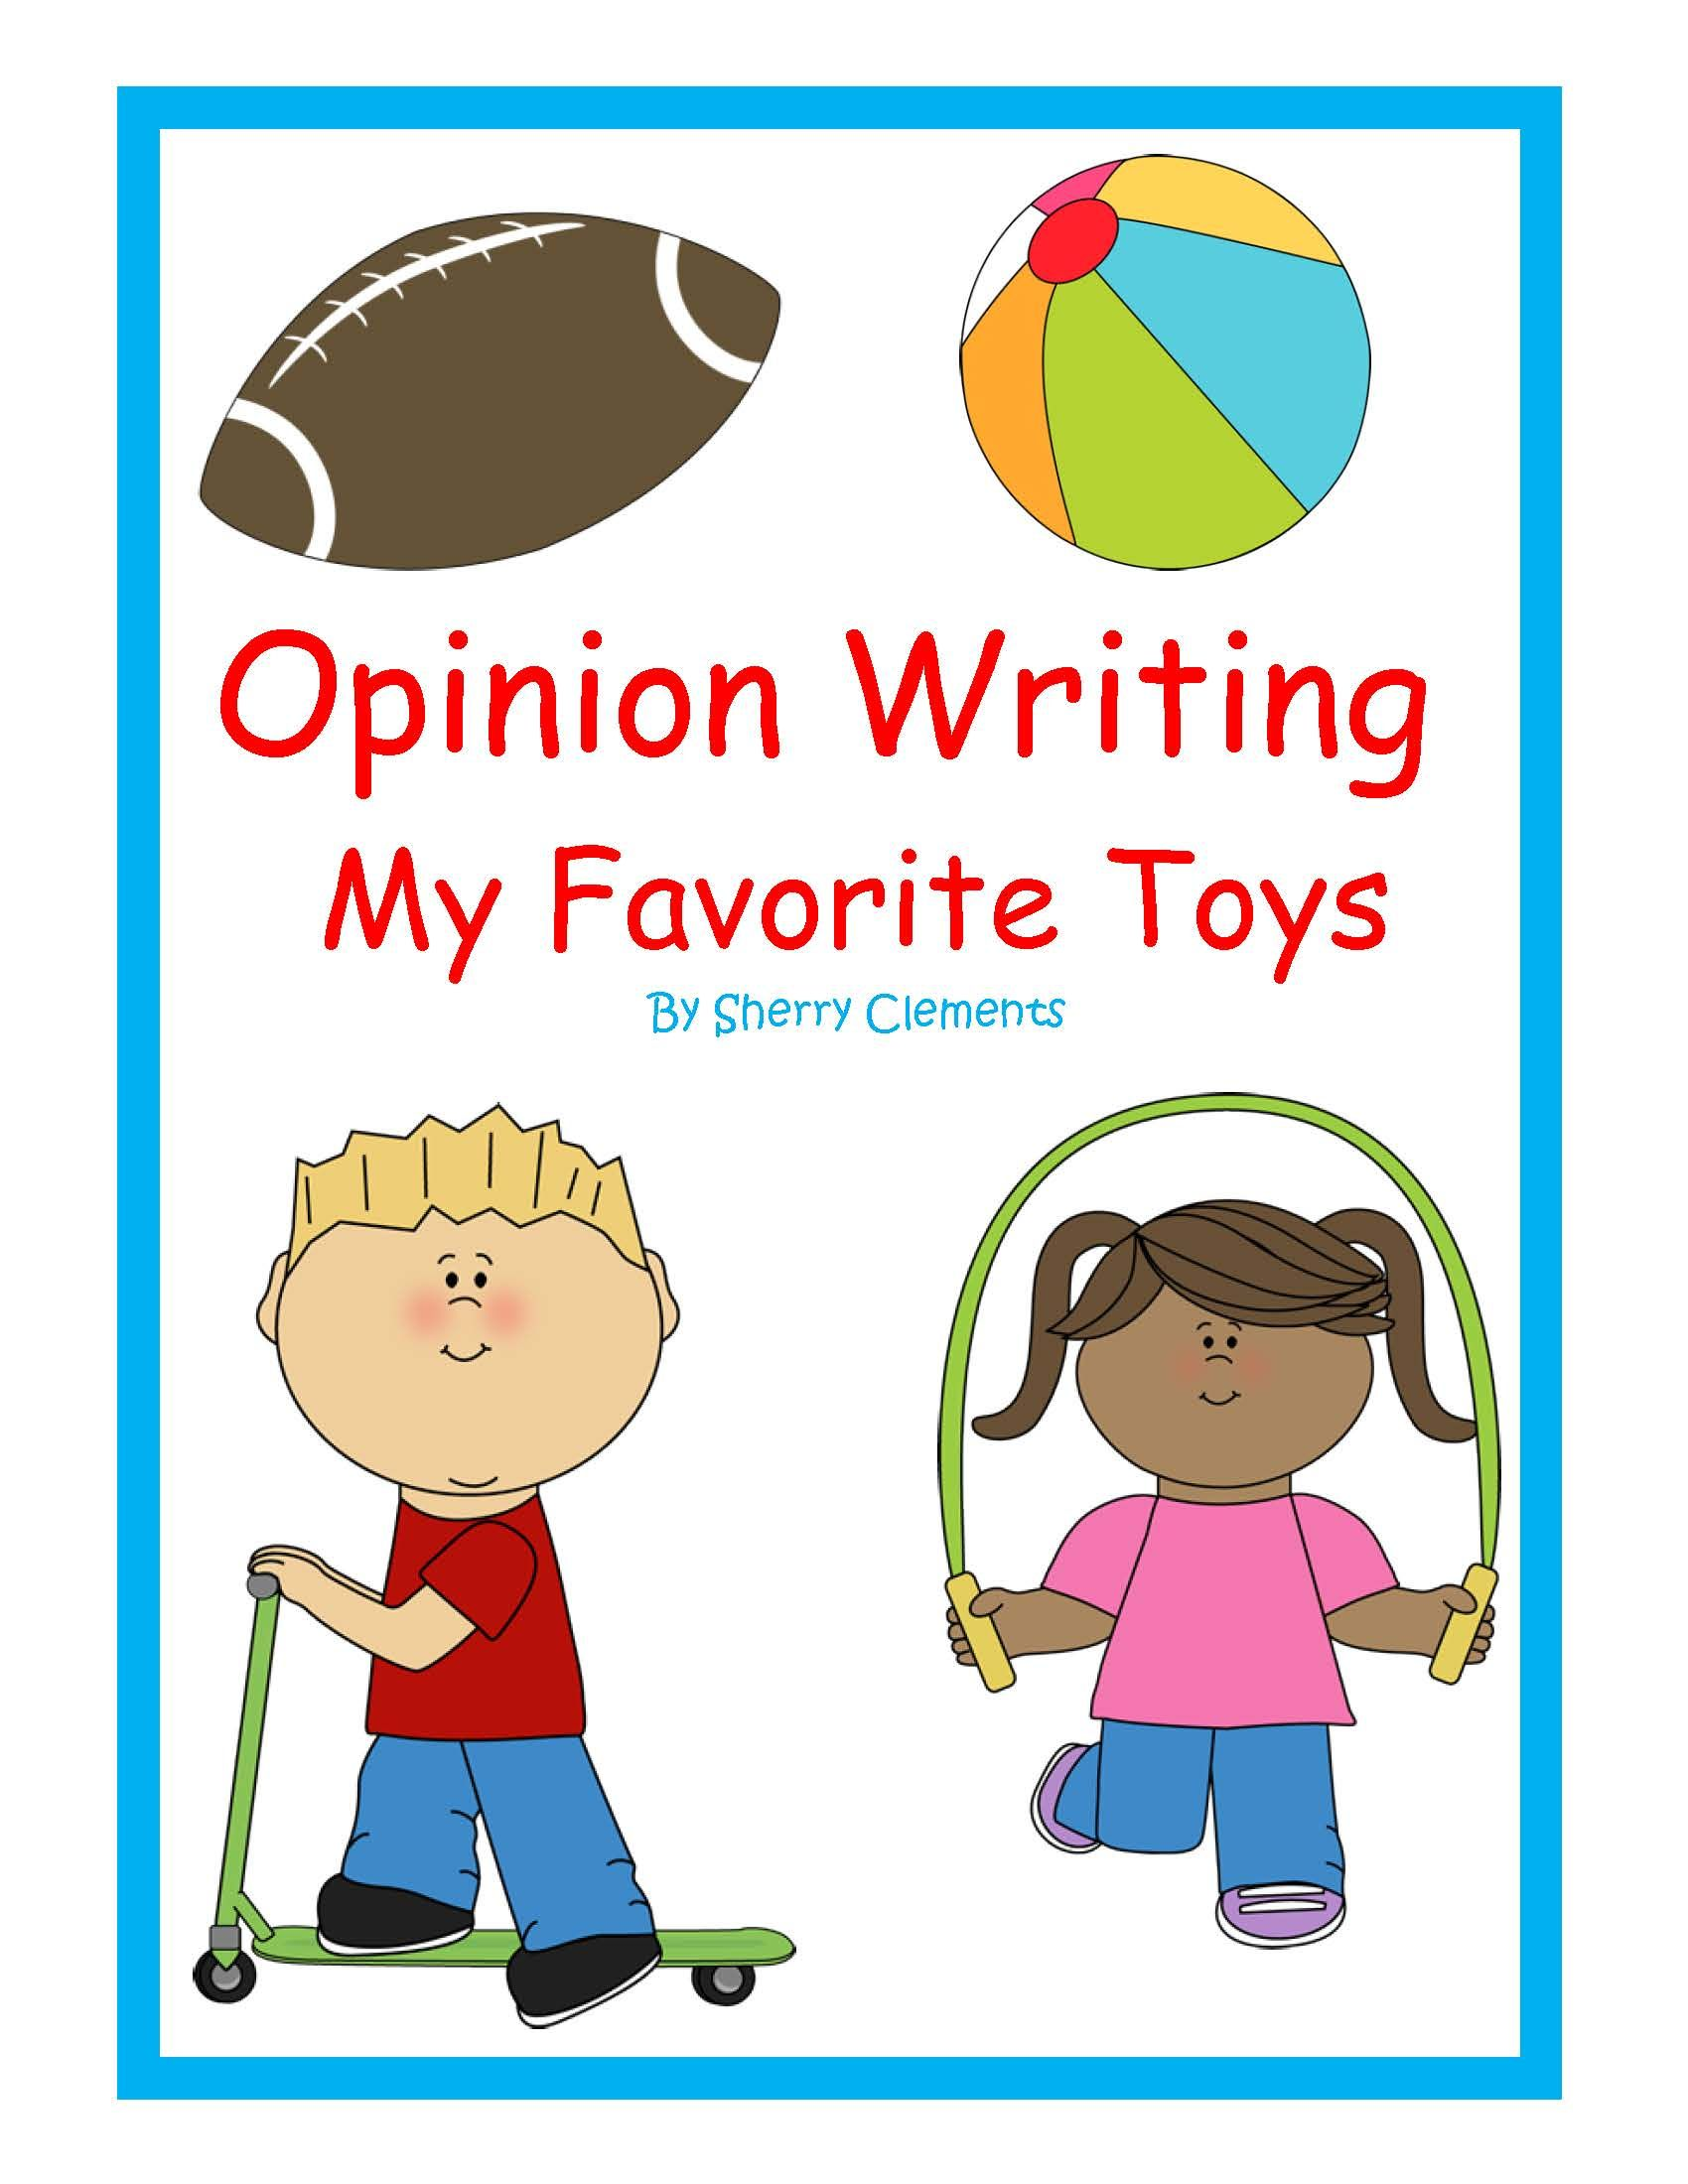 Toys images clip art  Toys  Opinion Writing Favorite Toys  Kindergarten writing